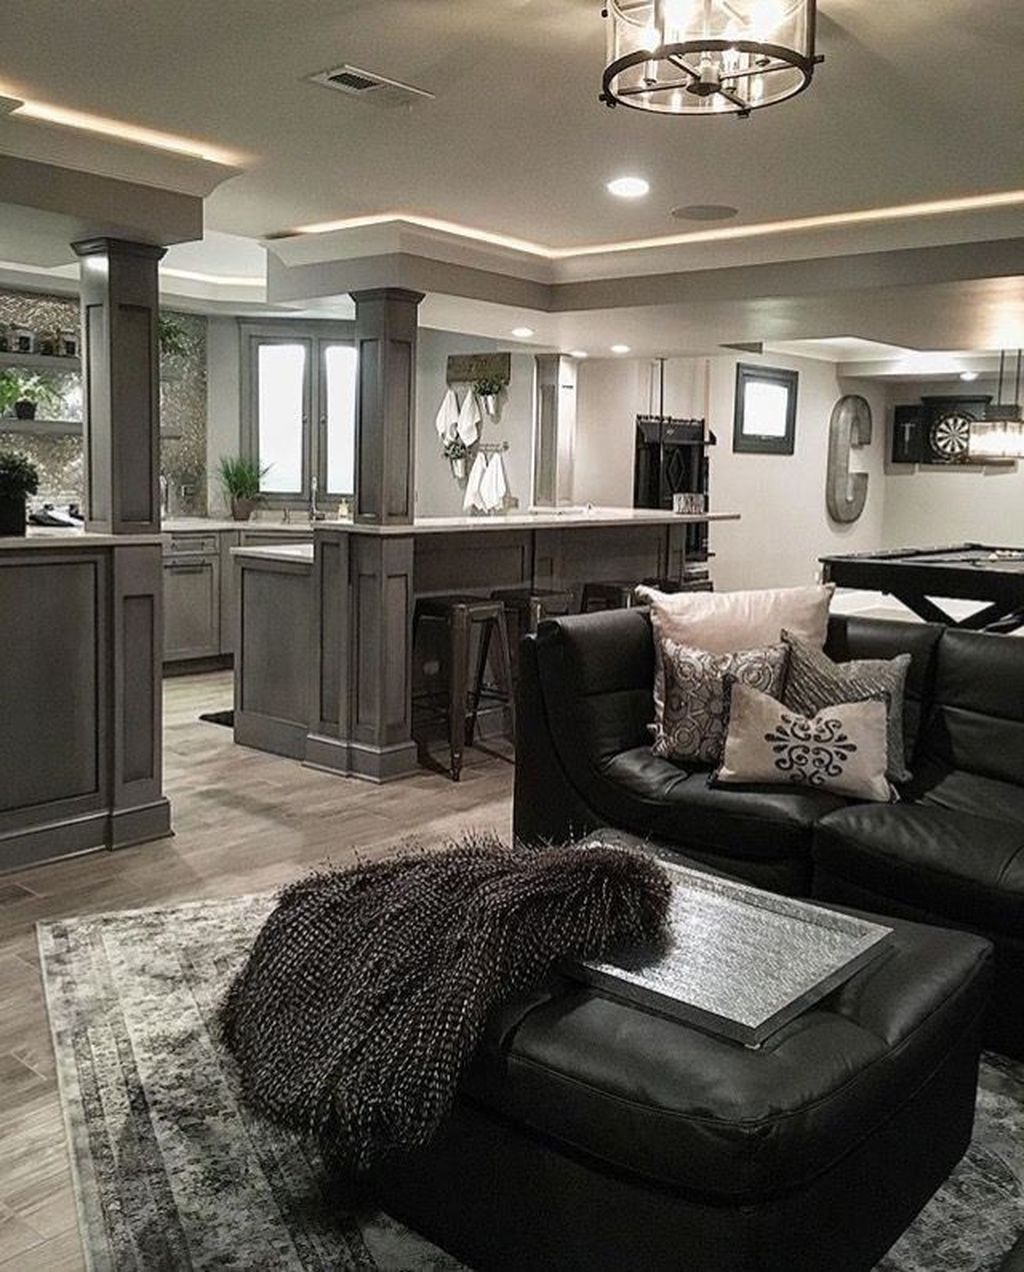 Adorable Basement Remodel Ideas For Upgrading Your Room Design 25